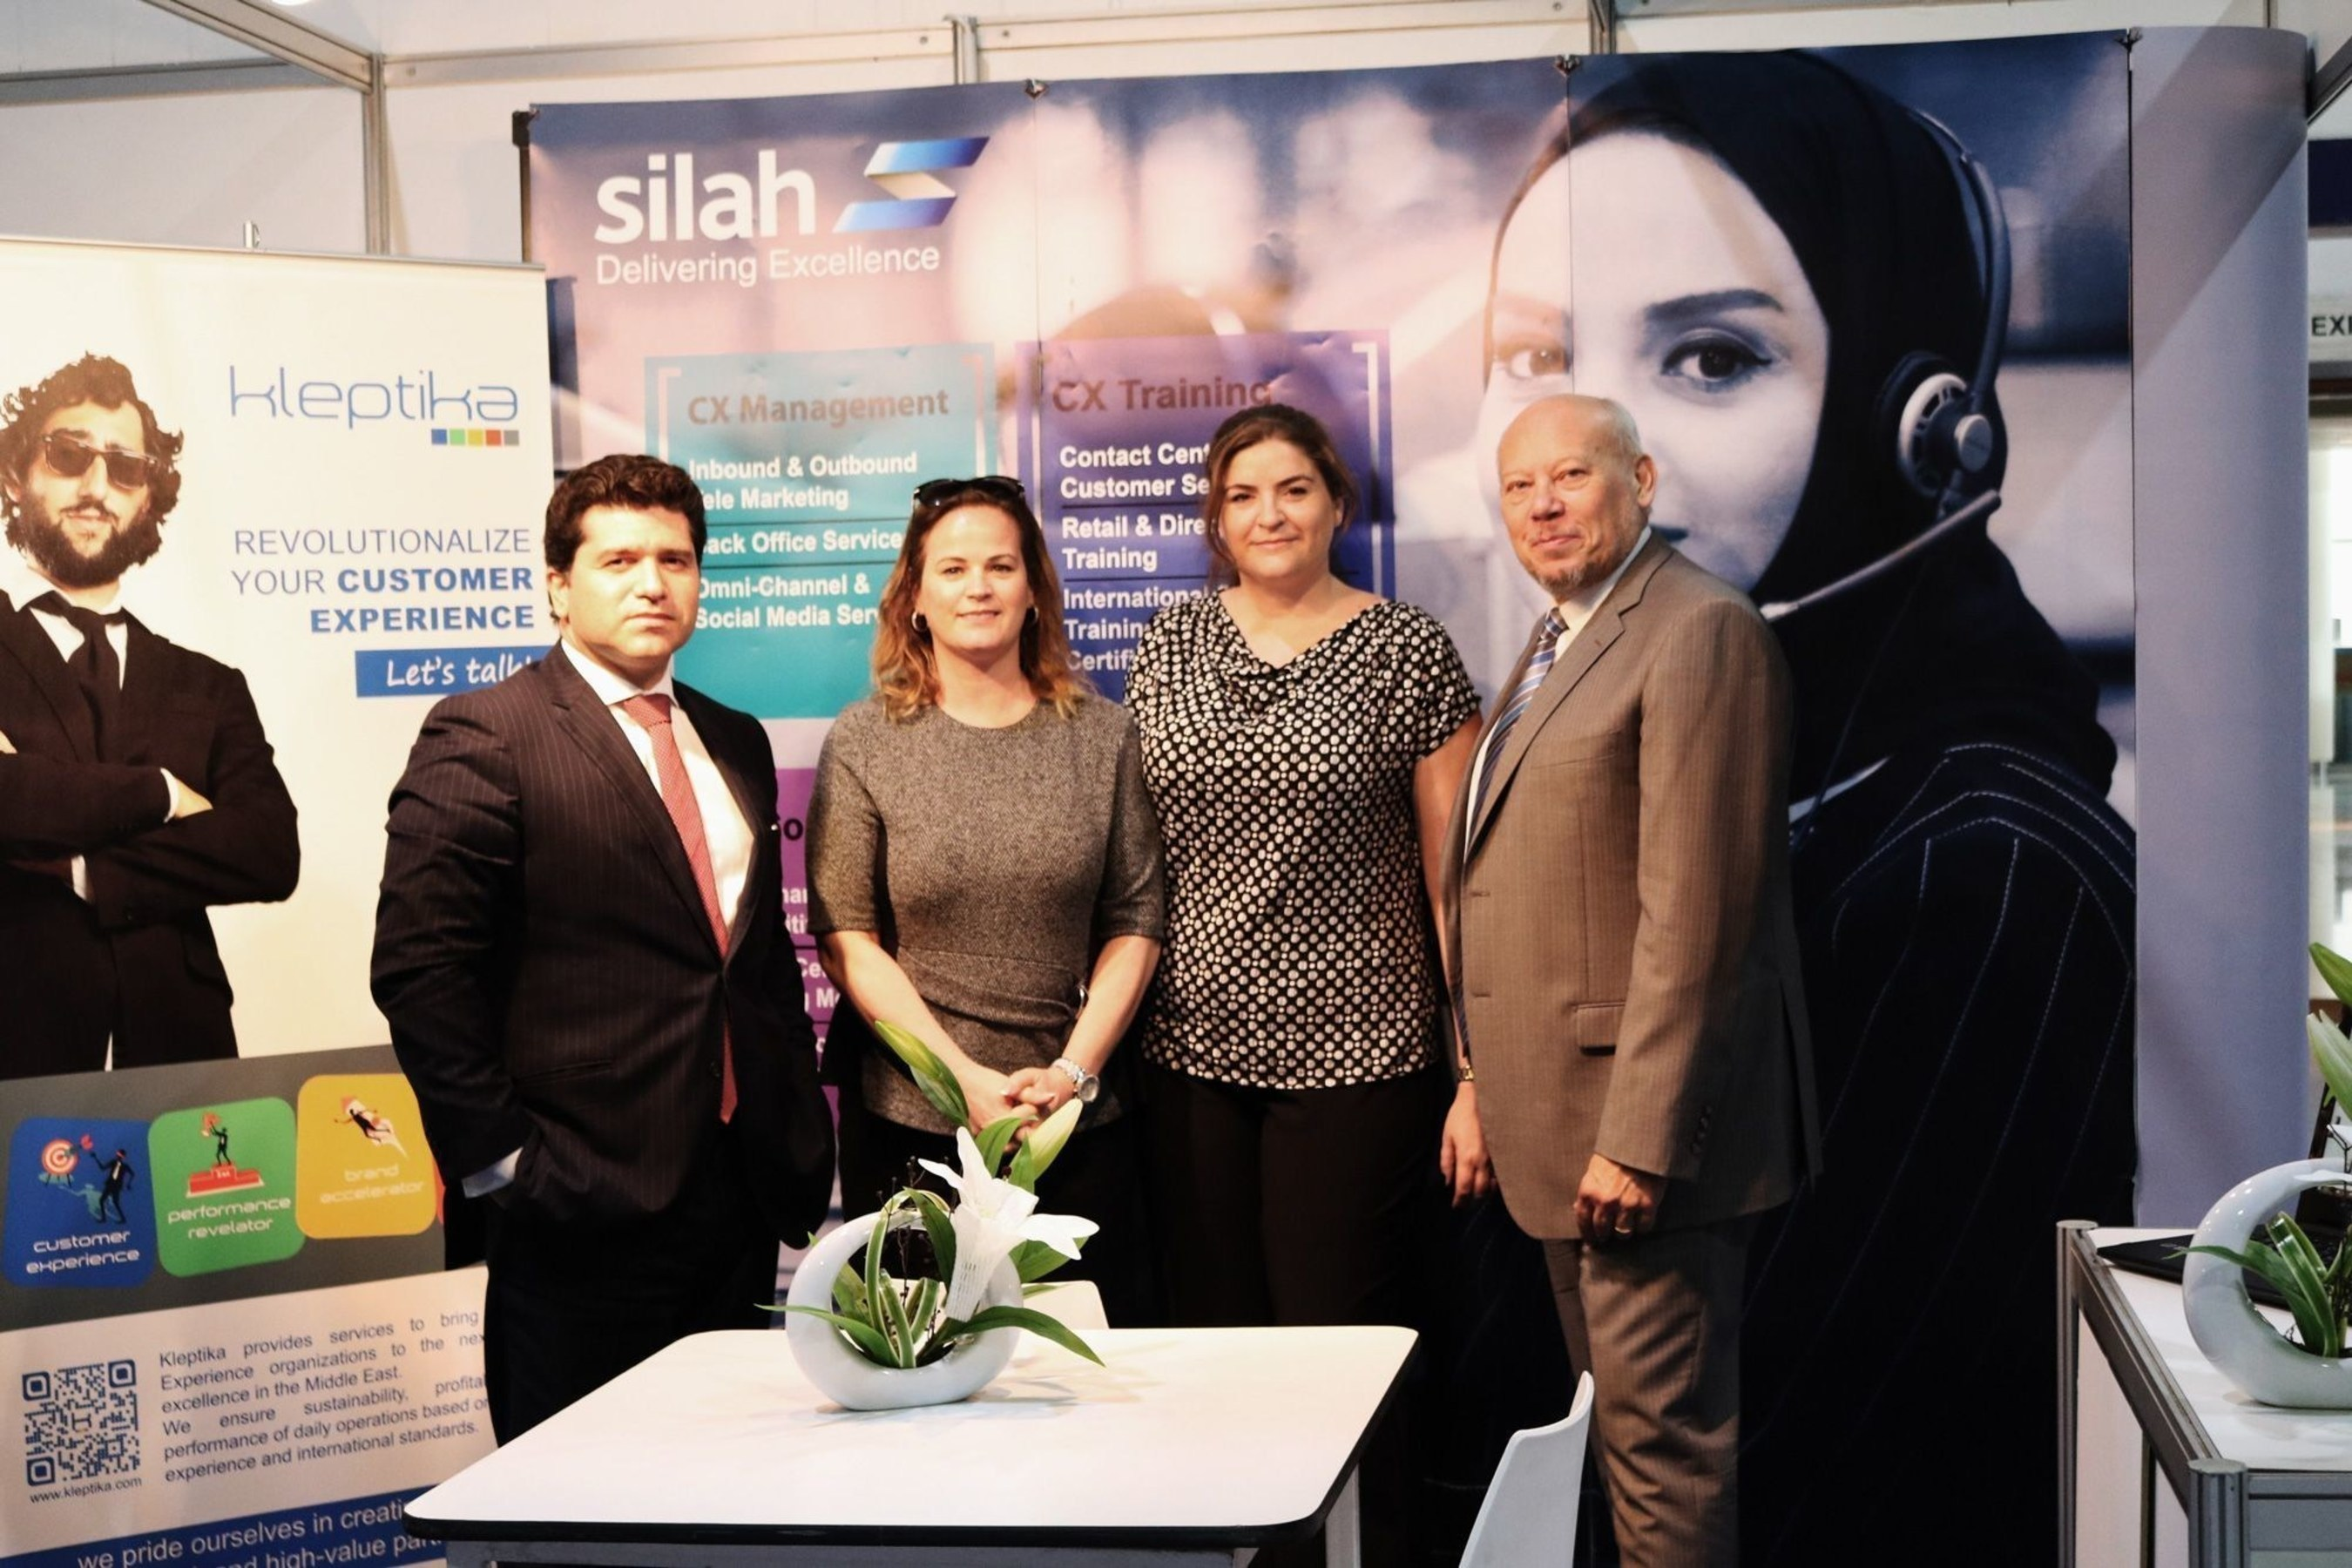 Silah Gulf's CEO, Ricardo Langwieder-Goerner, Jo O'Flynn, CTO at Silah Gulf, Sandrine Piedras, GM at Kleptika and Thierry Petrens, Kleptika's Founder and Managing Partner. (PRNewsFoto/Kleptika and Silah Gulf)